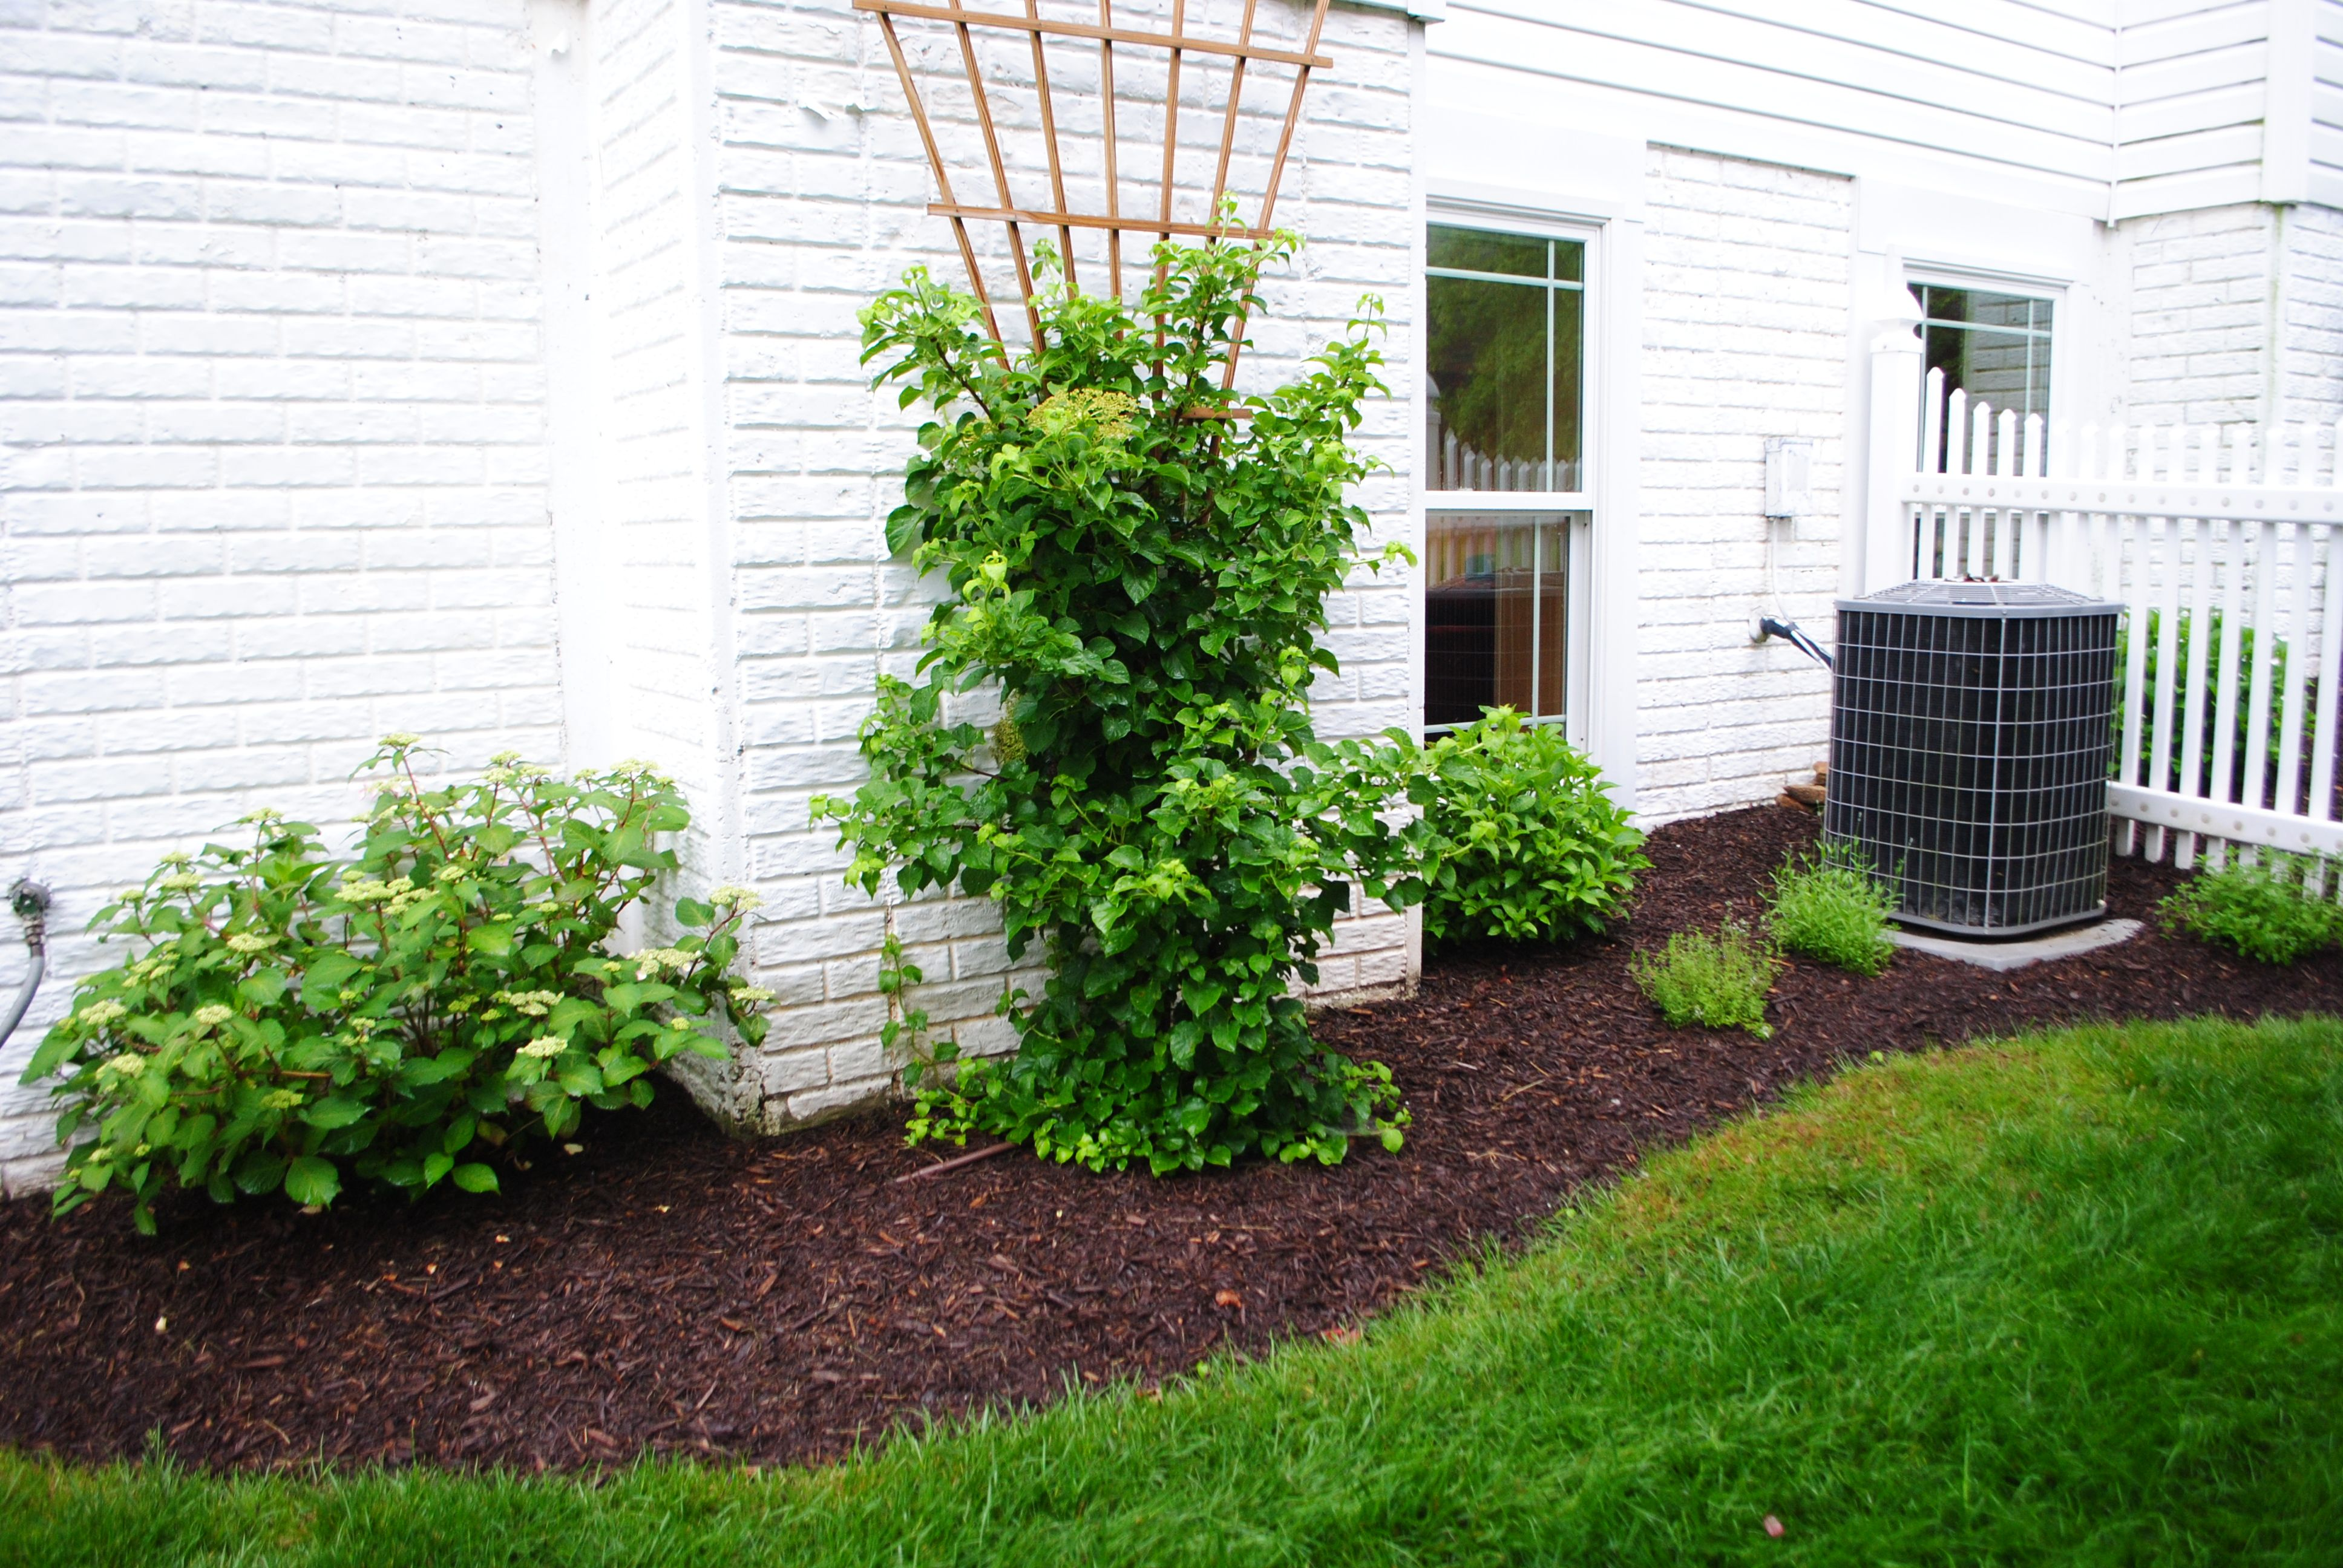 6 Air Conditioner Outdoor structures, Outdoor, Plants